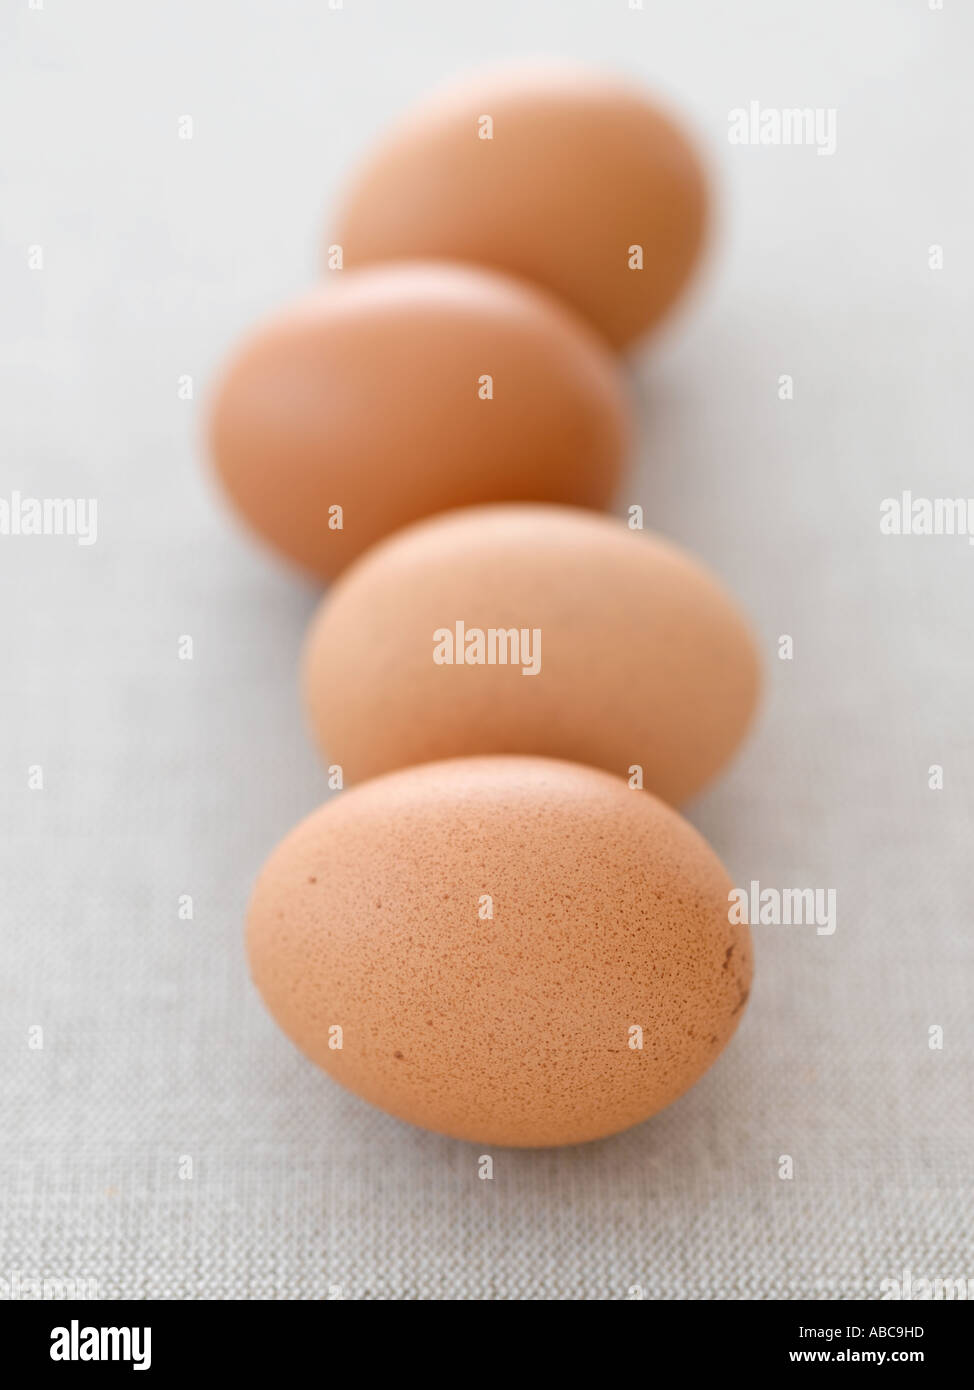 Eggs on pale linen - high end Hasselblad 61mb digital image Stock Photo